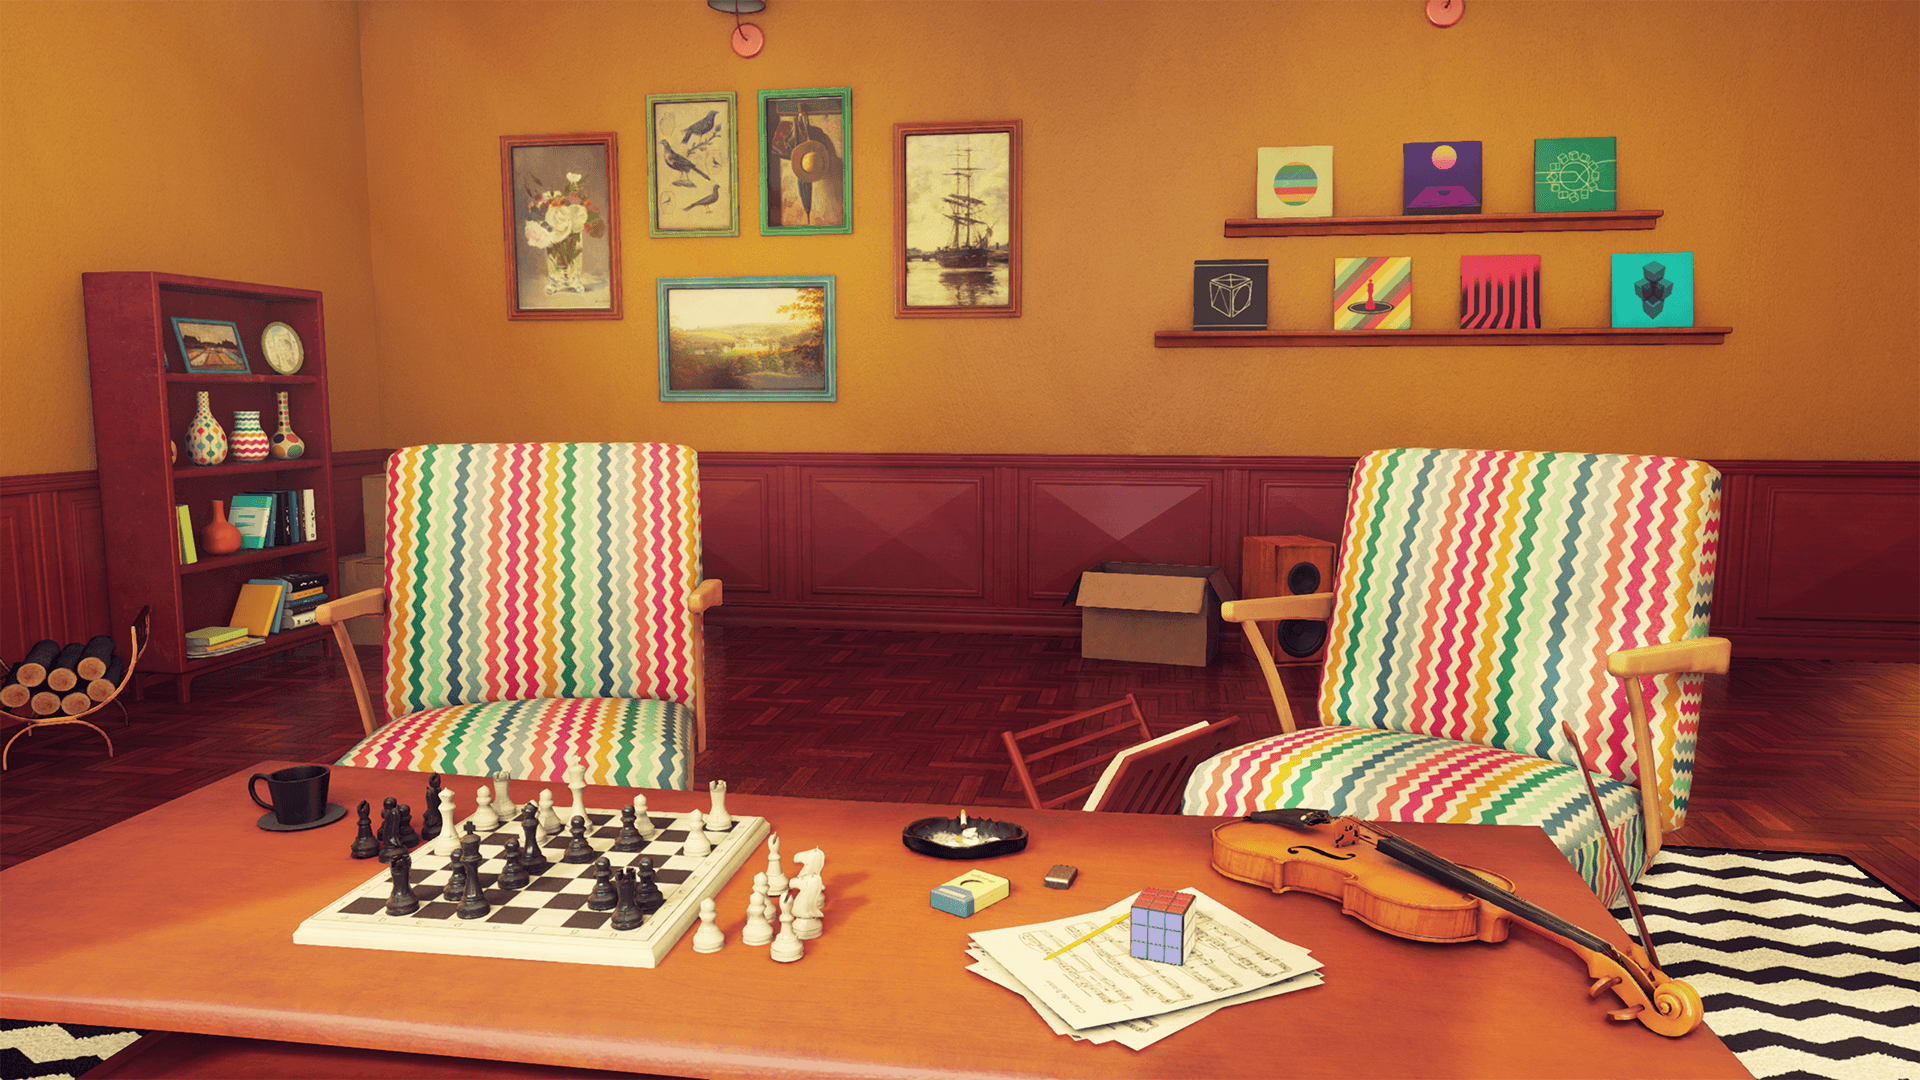 retro living room. Share Customizable Retro Living Room by Nguyen Cong Thai in Environments